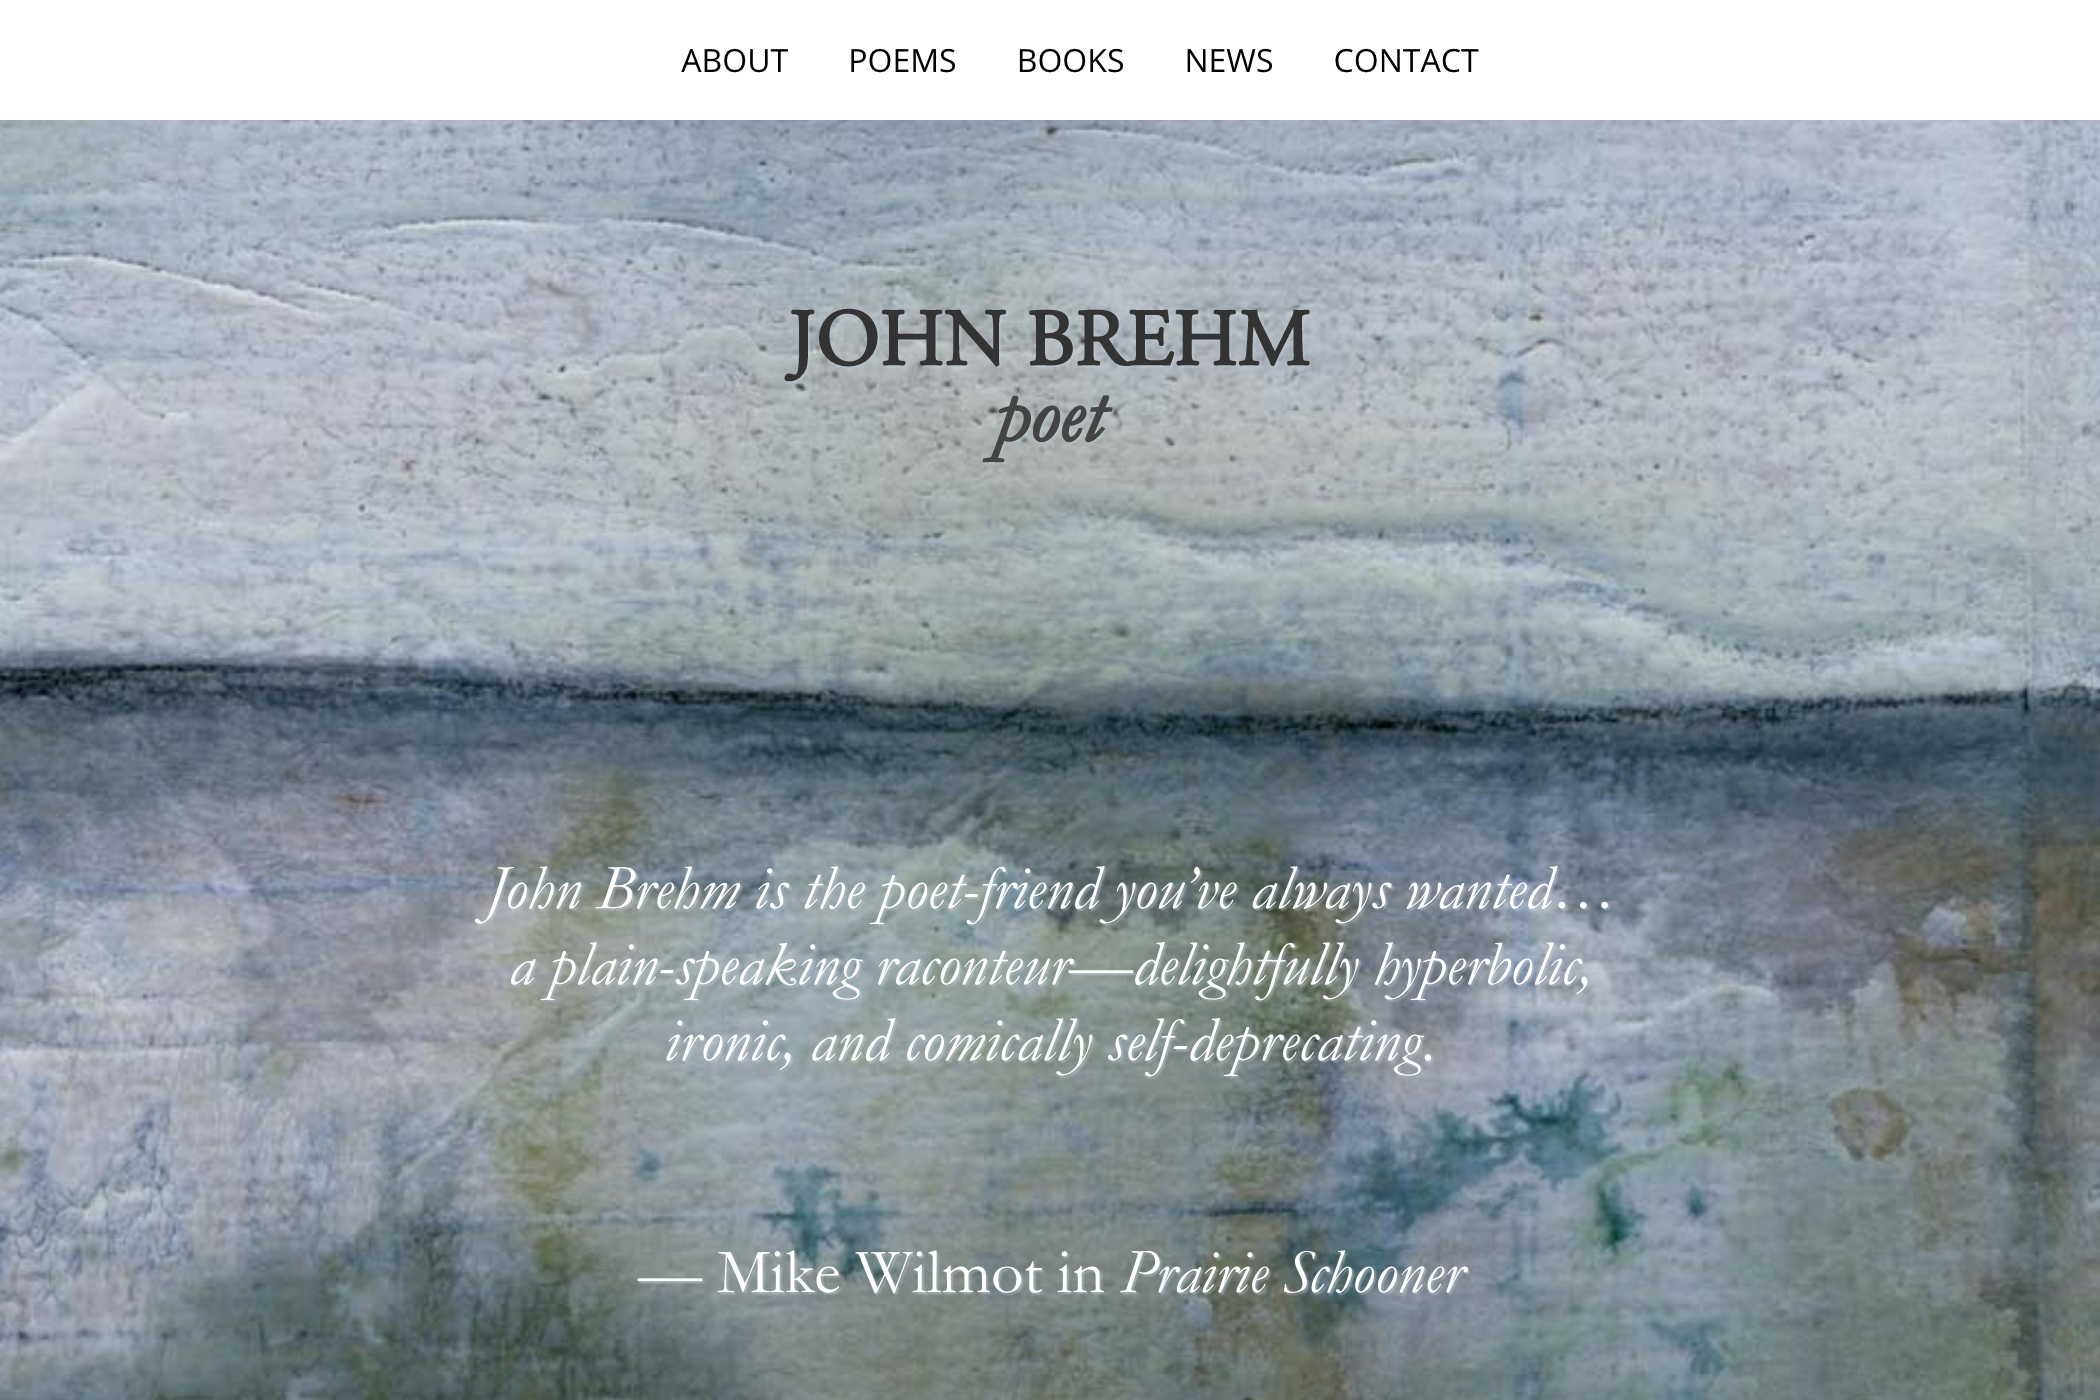 website design for a writer - home page for a poet